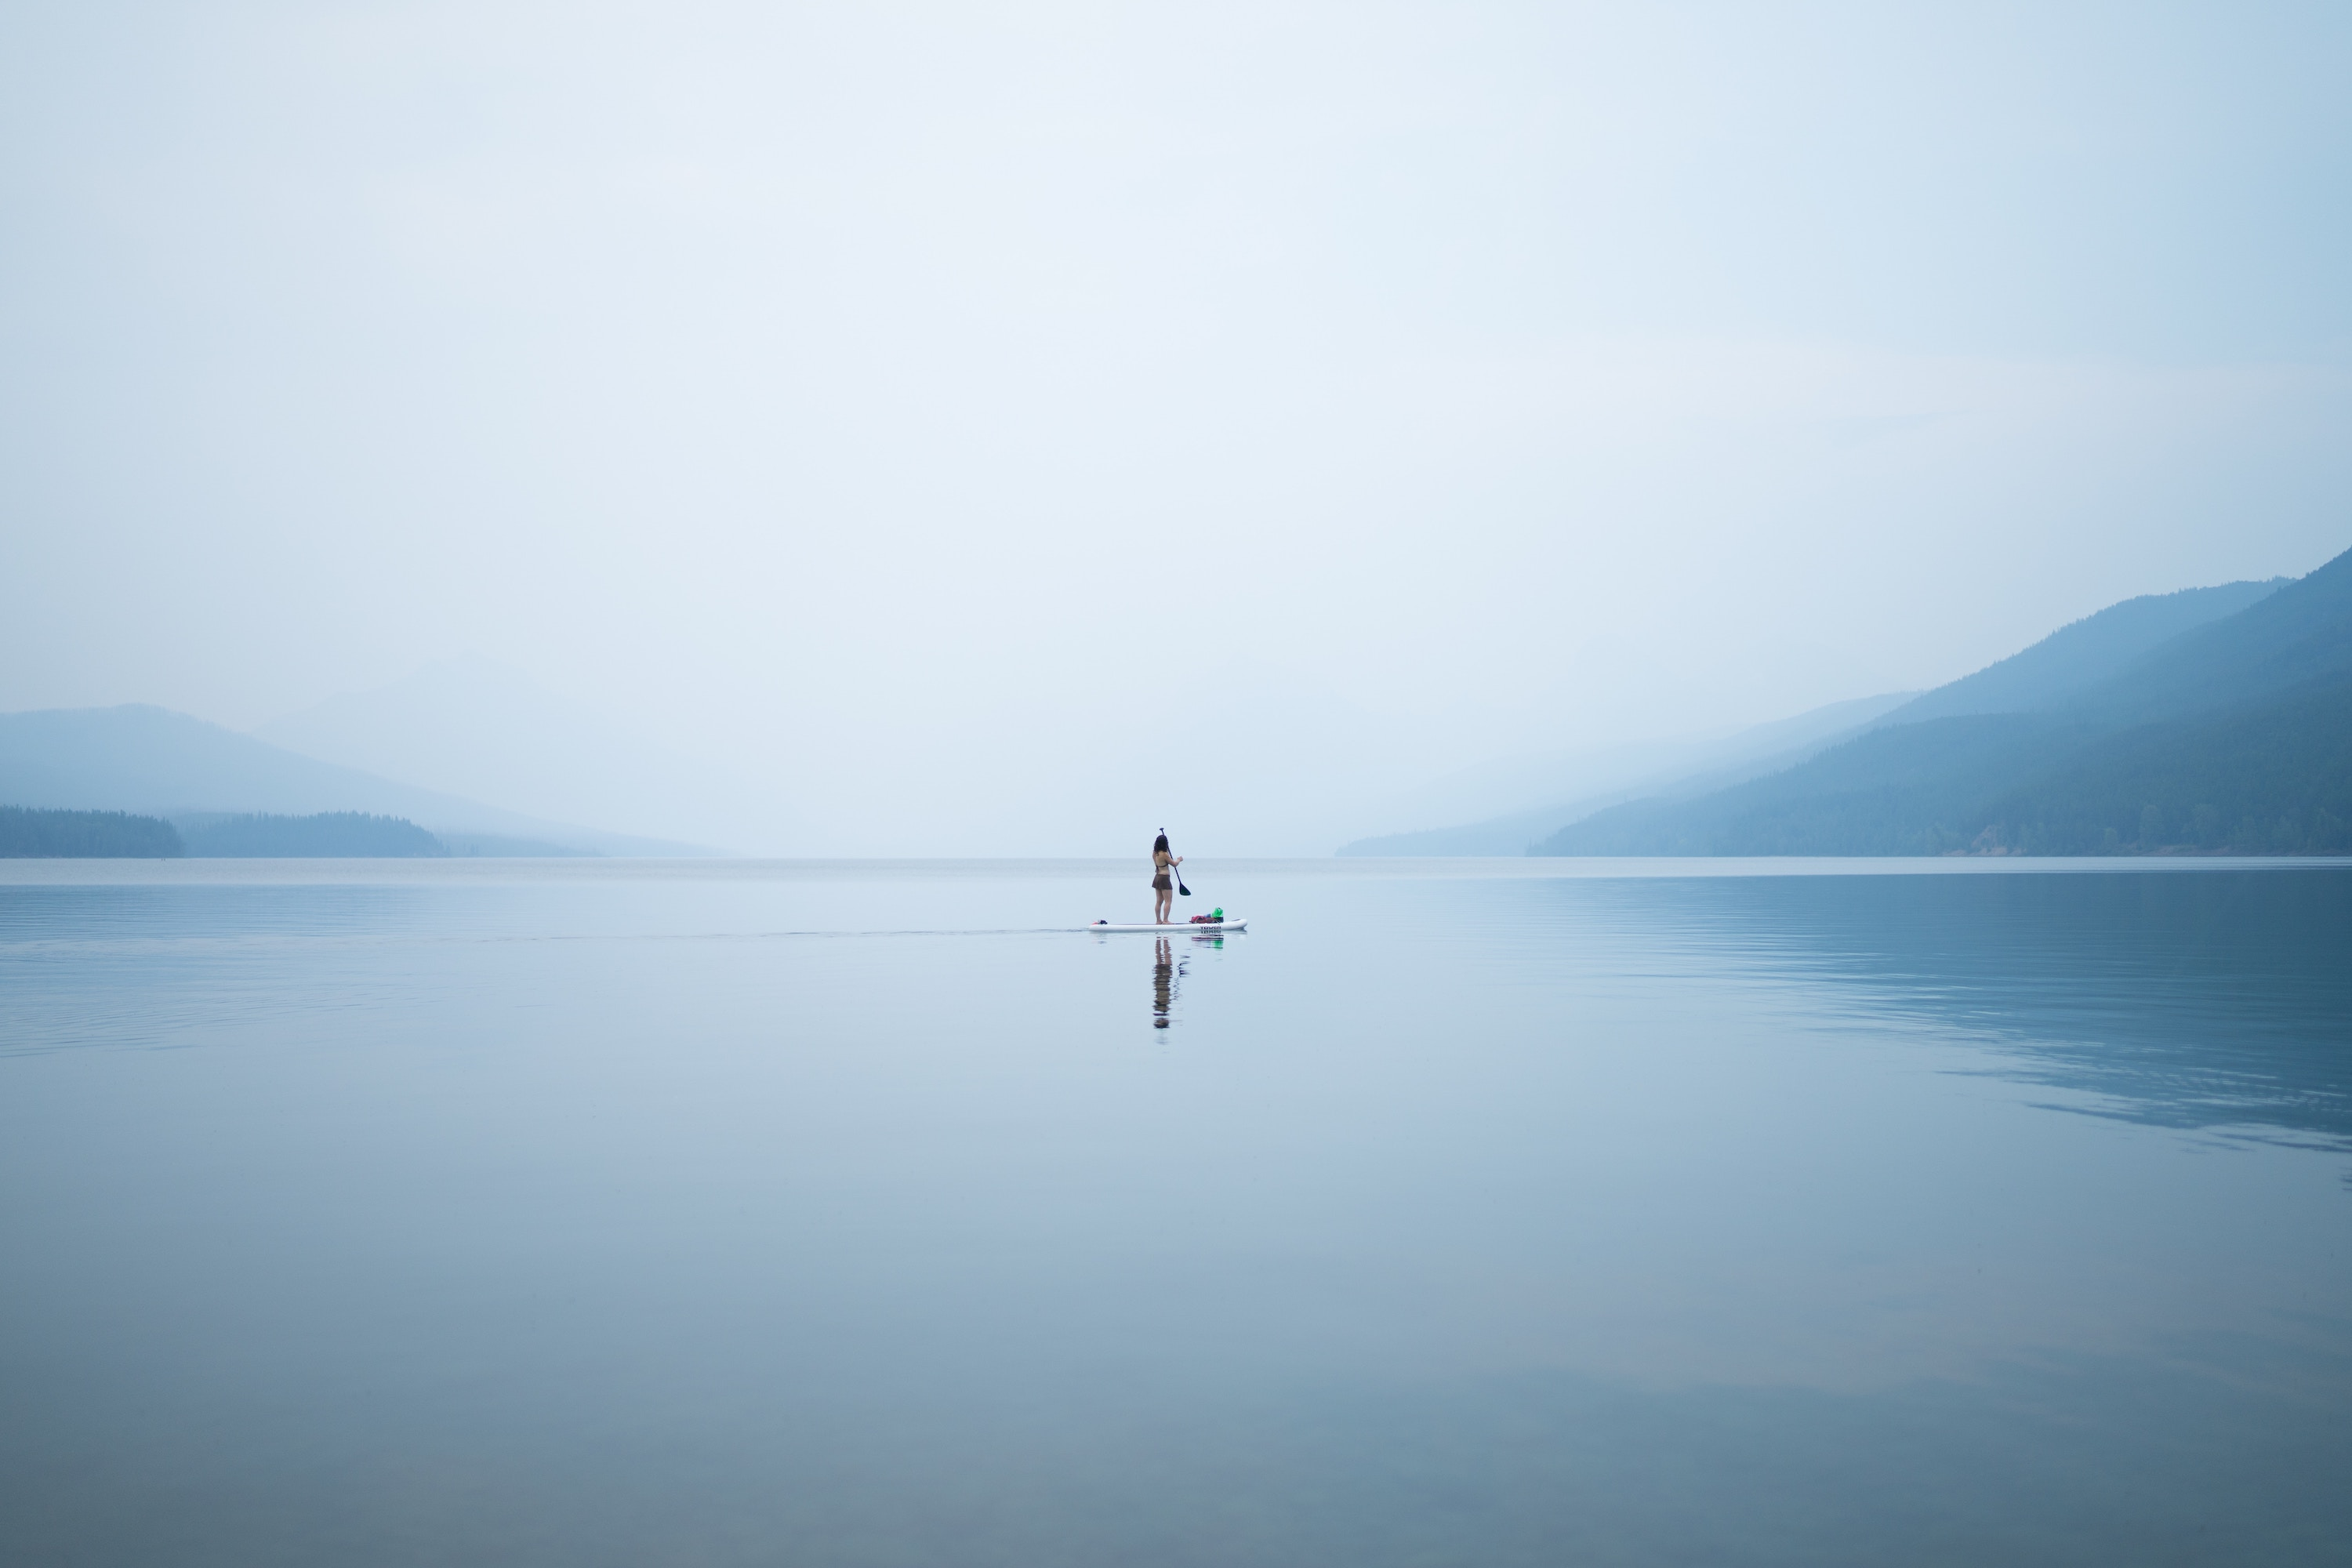 Lonely Woman on the Lake